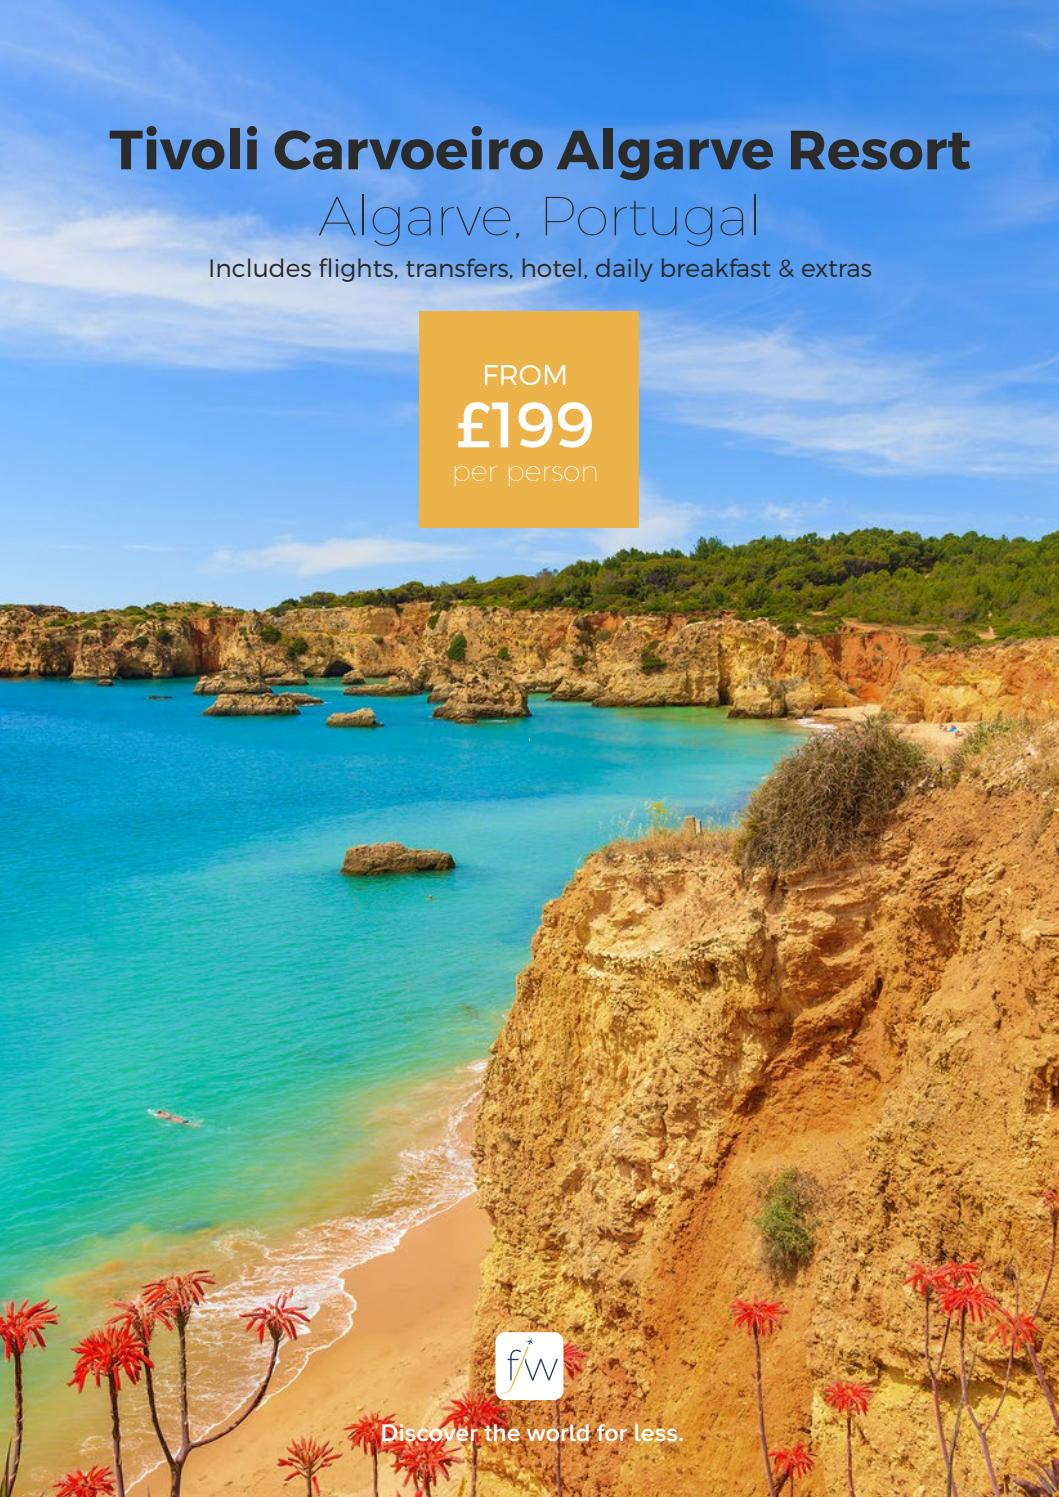 Hotel Tivoli Carvoeiro Algarve Booking Tivoli Carvoeiro Algarve Portugal By Fleetway Issuu